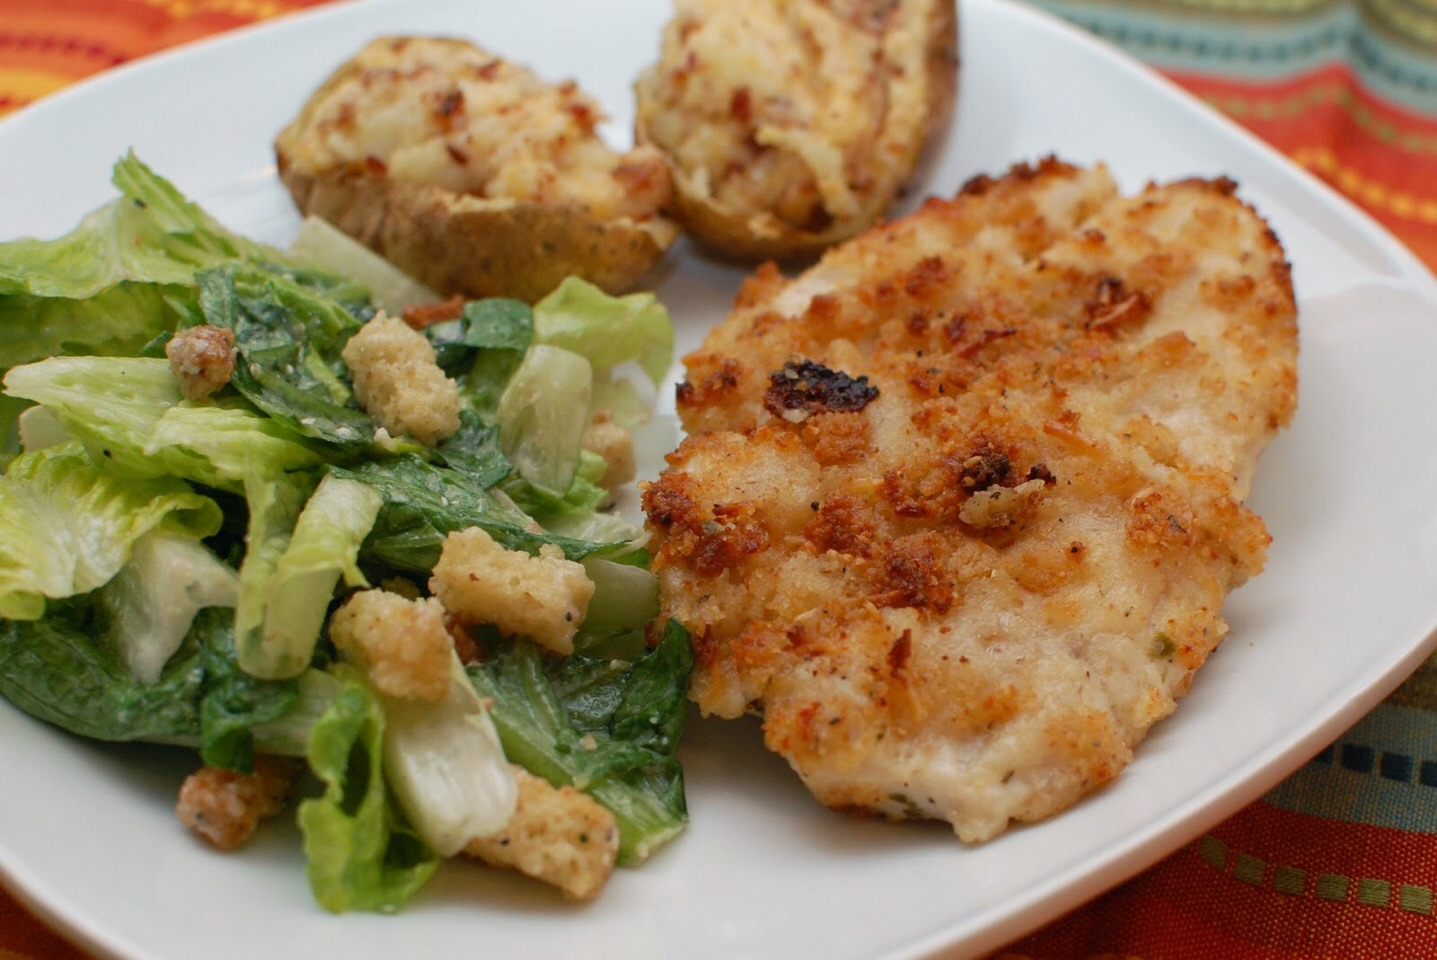 These breaded chicken breasts are crispy and brown on the outside and tender and juicy on the inside The seasoned crumbs add the extra flavor.